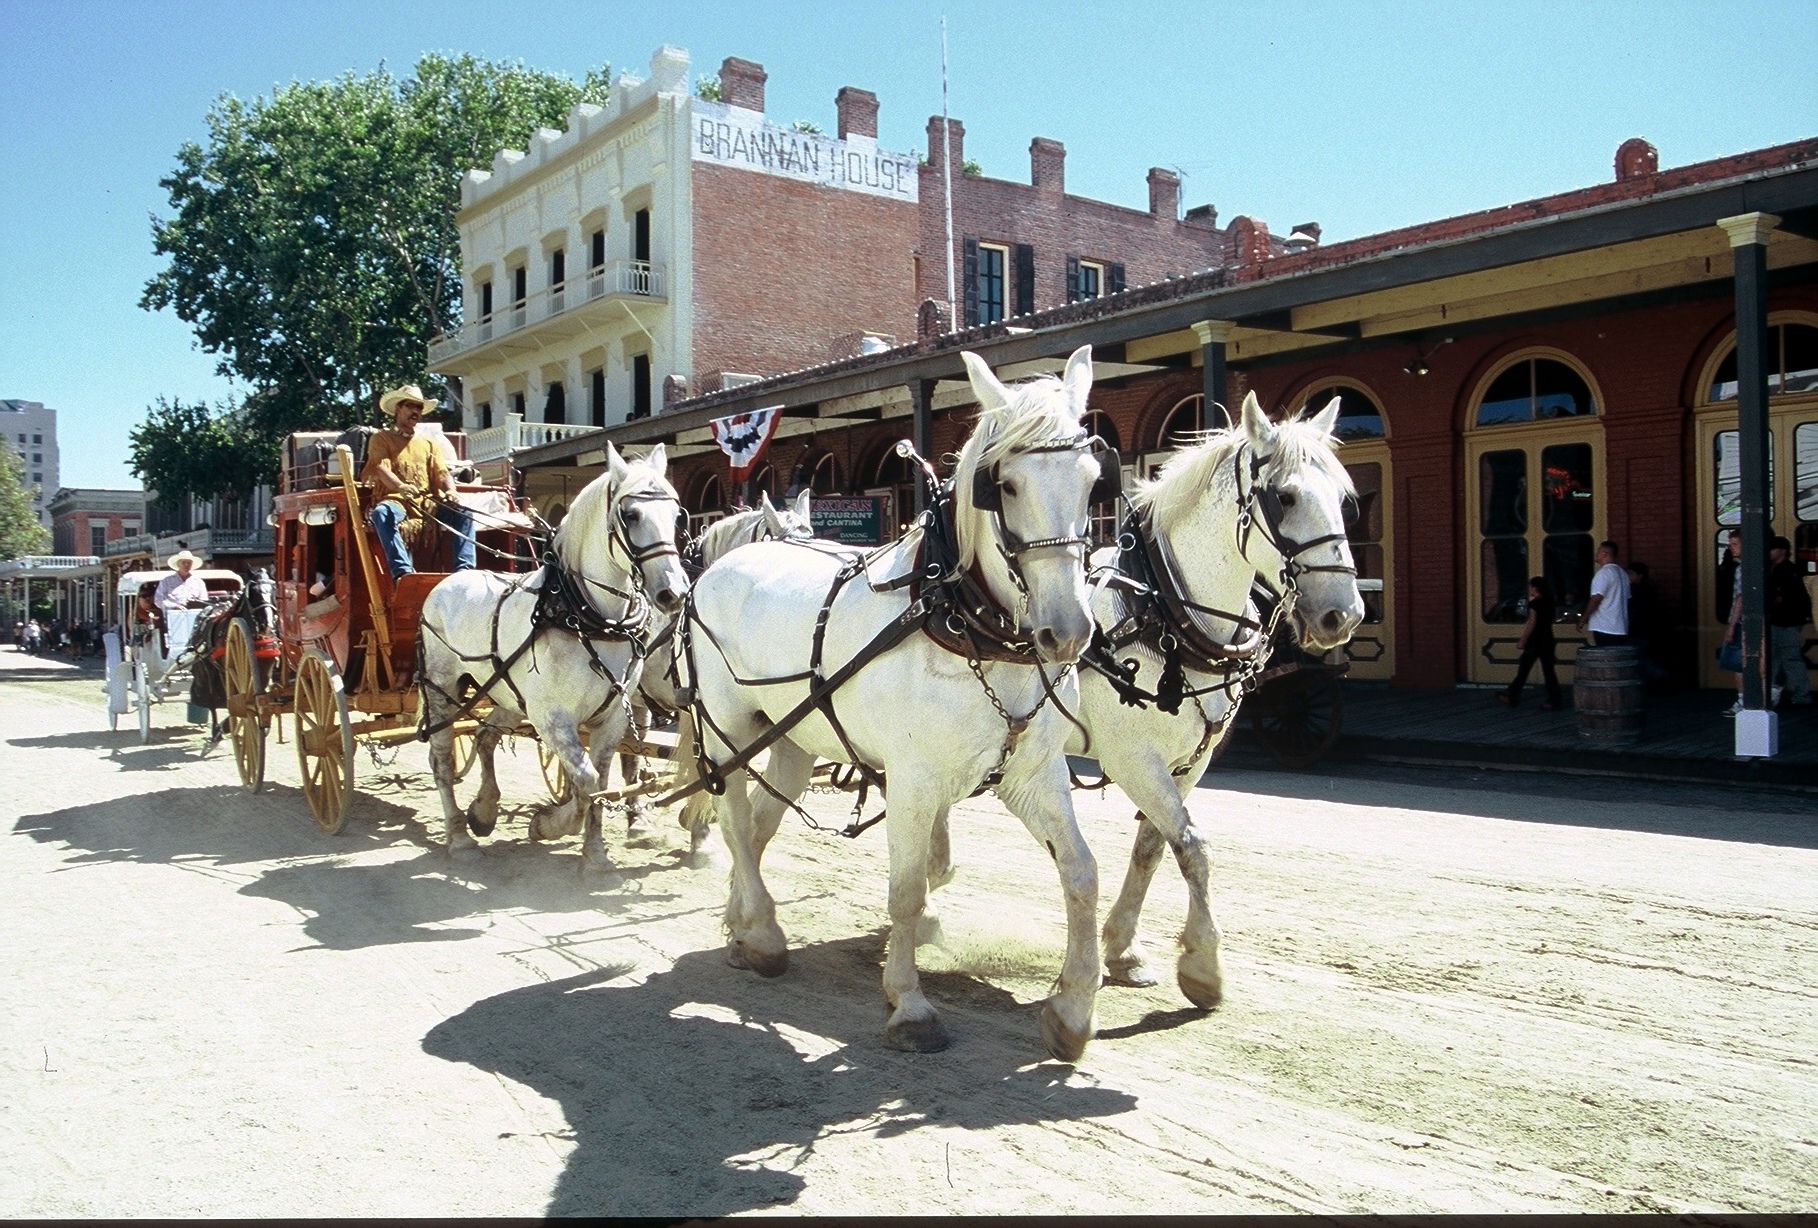 Horses pull a stagecoach past historic buildings during Gold Rush Days in Sacramento, California